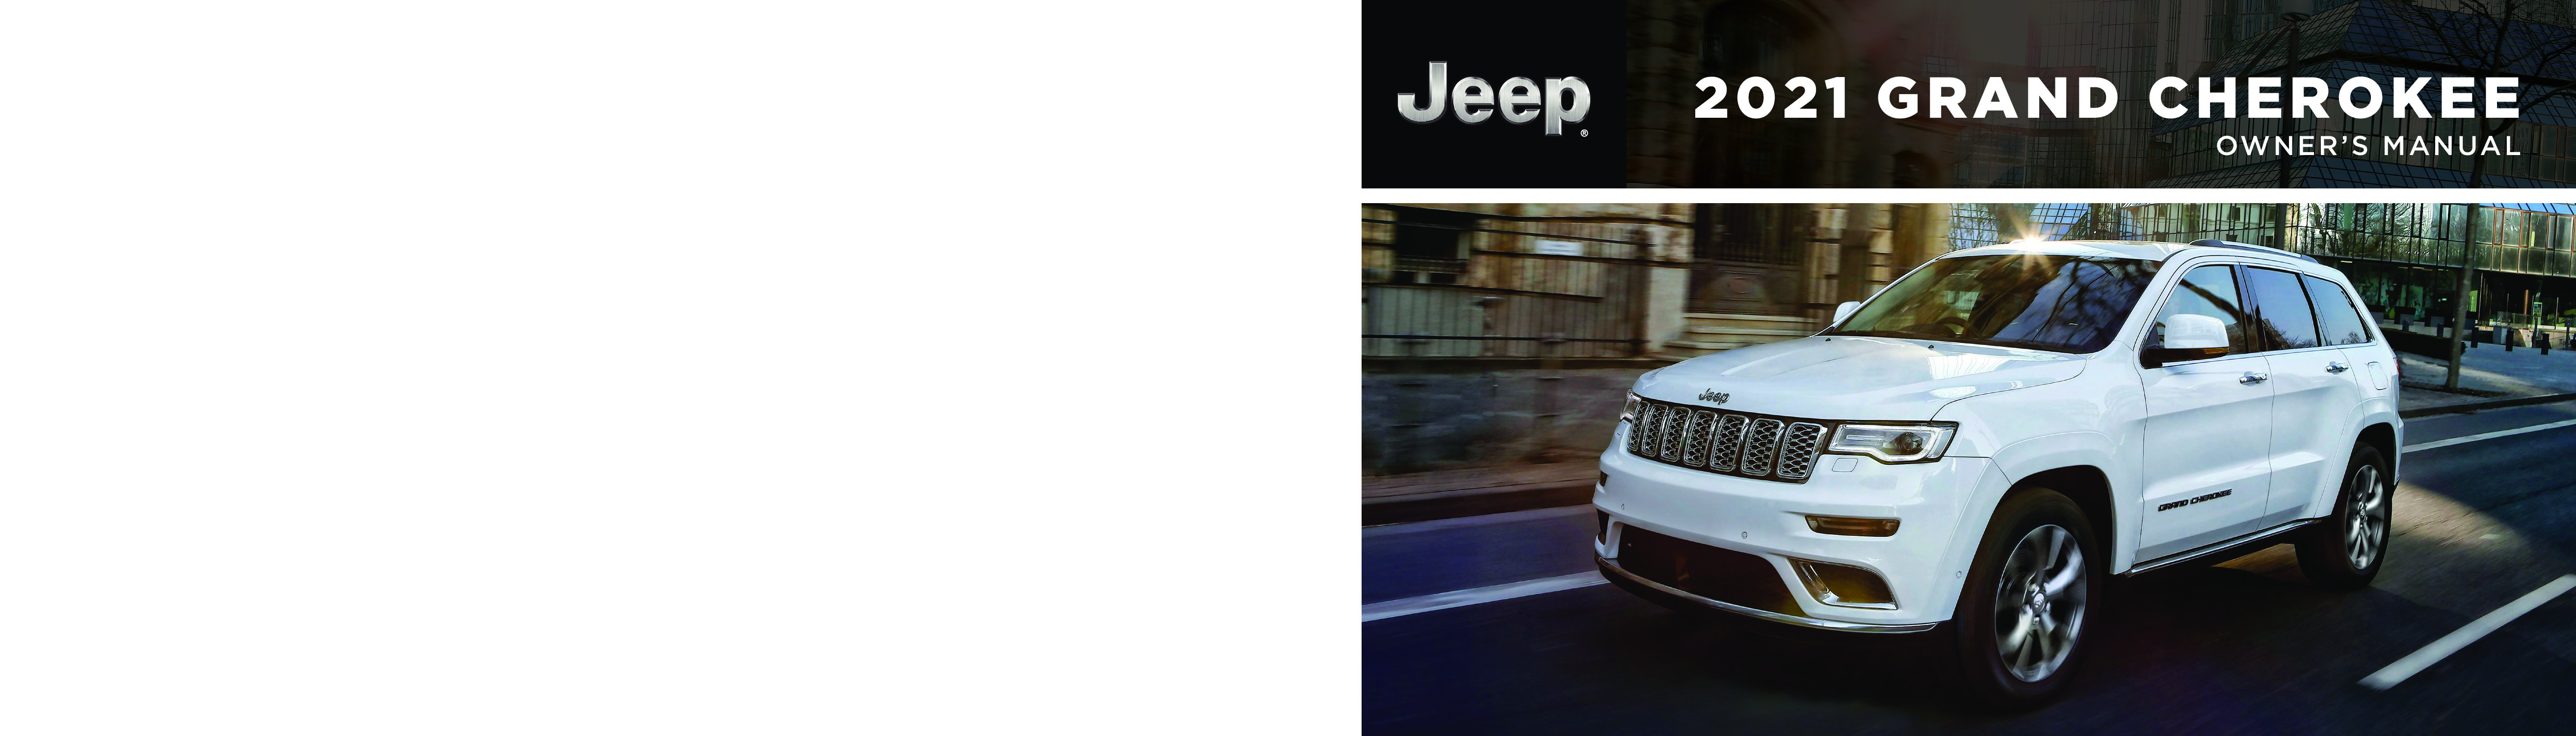 2021 Jeep Grand Cherokee owners manual